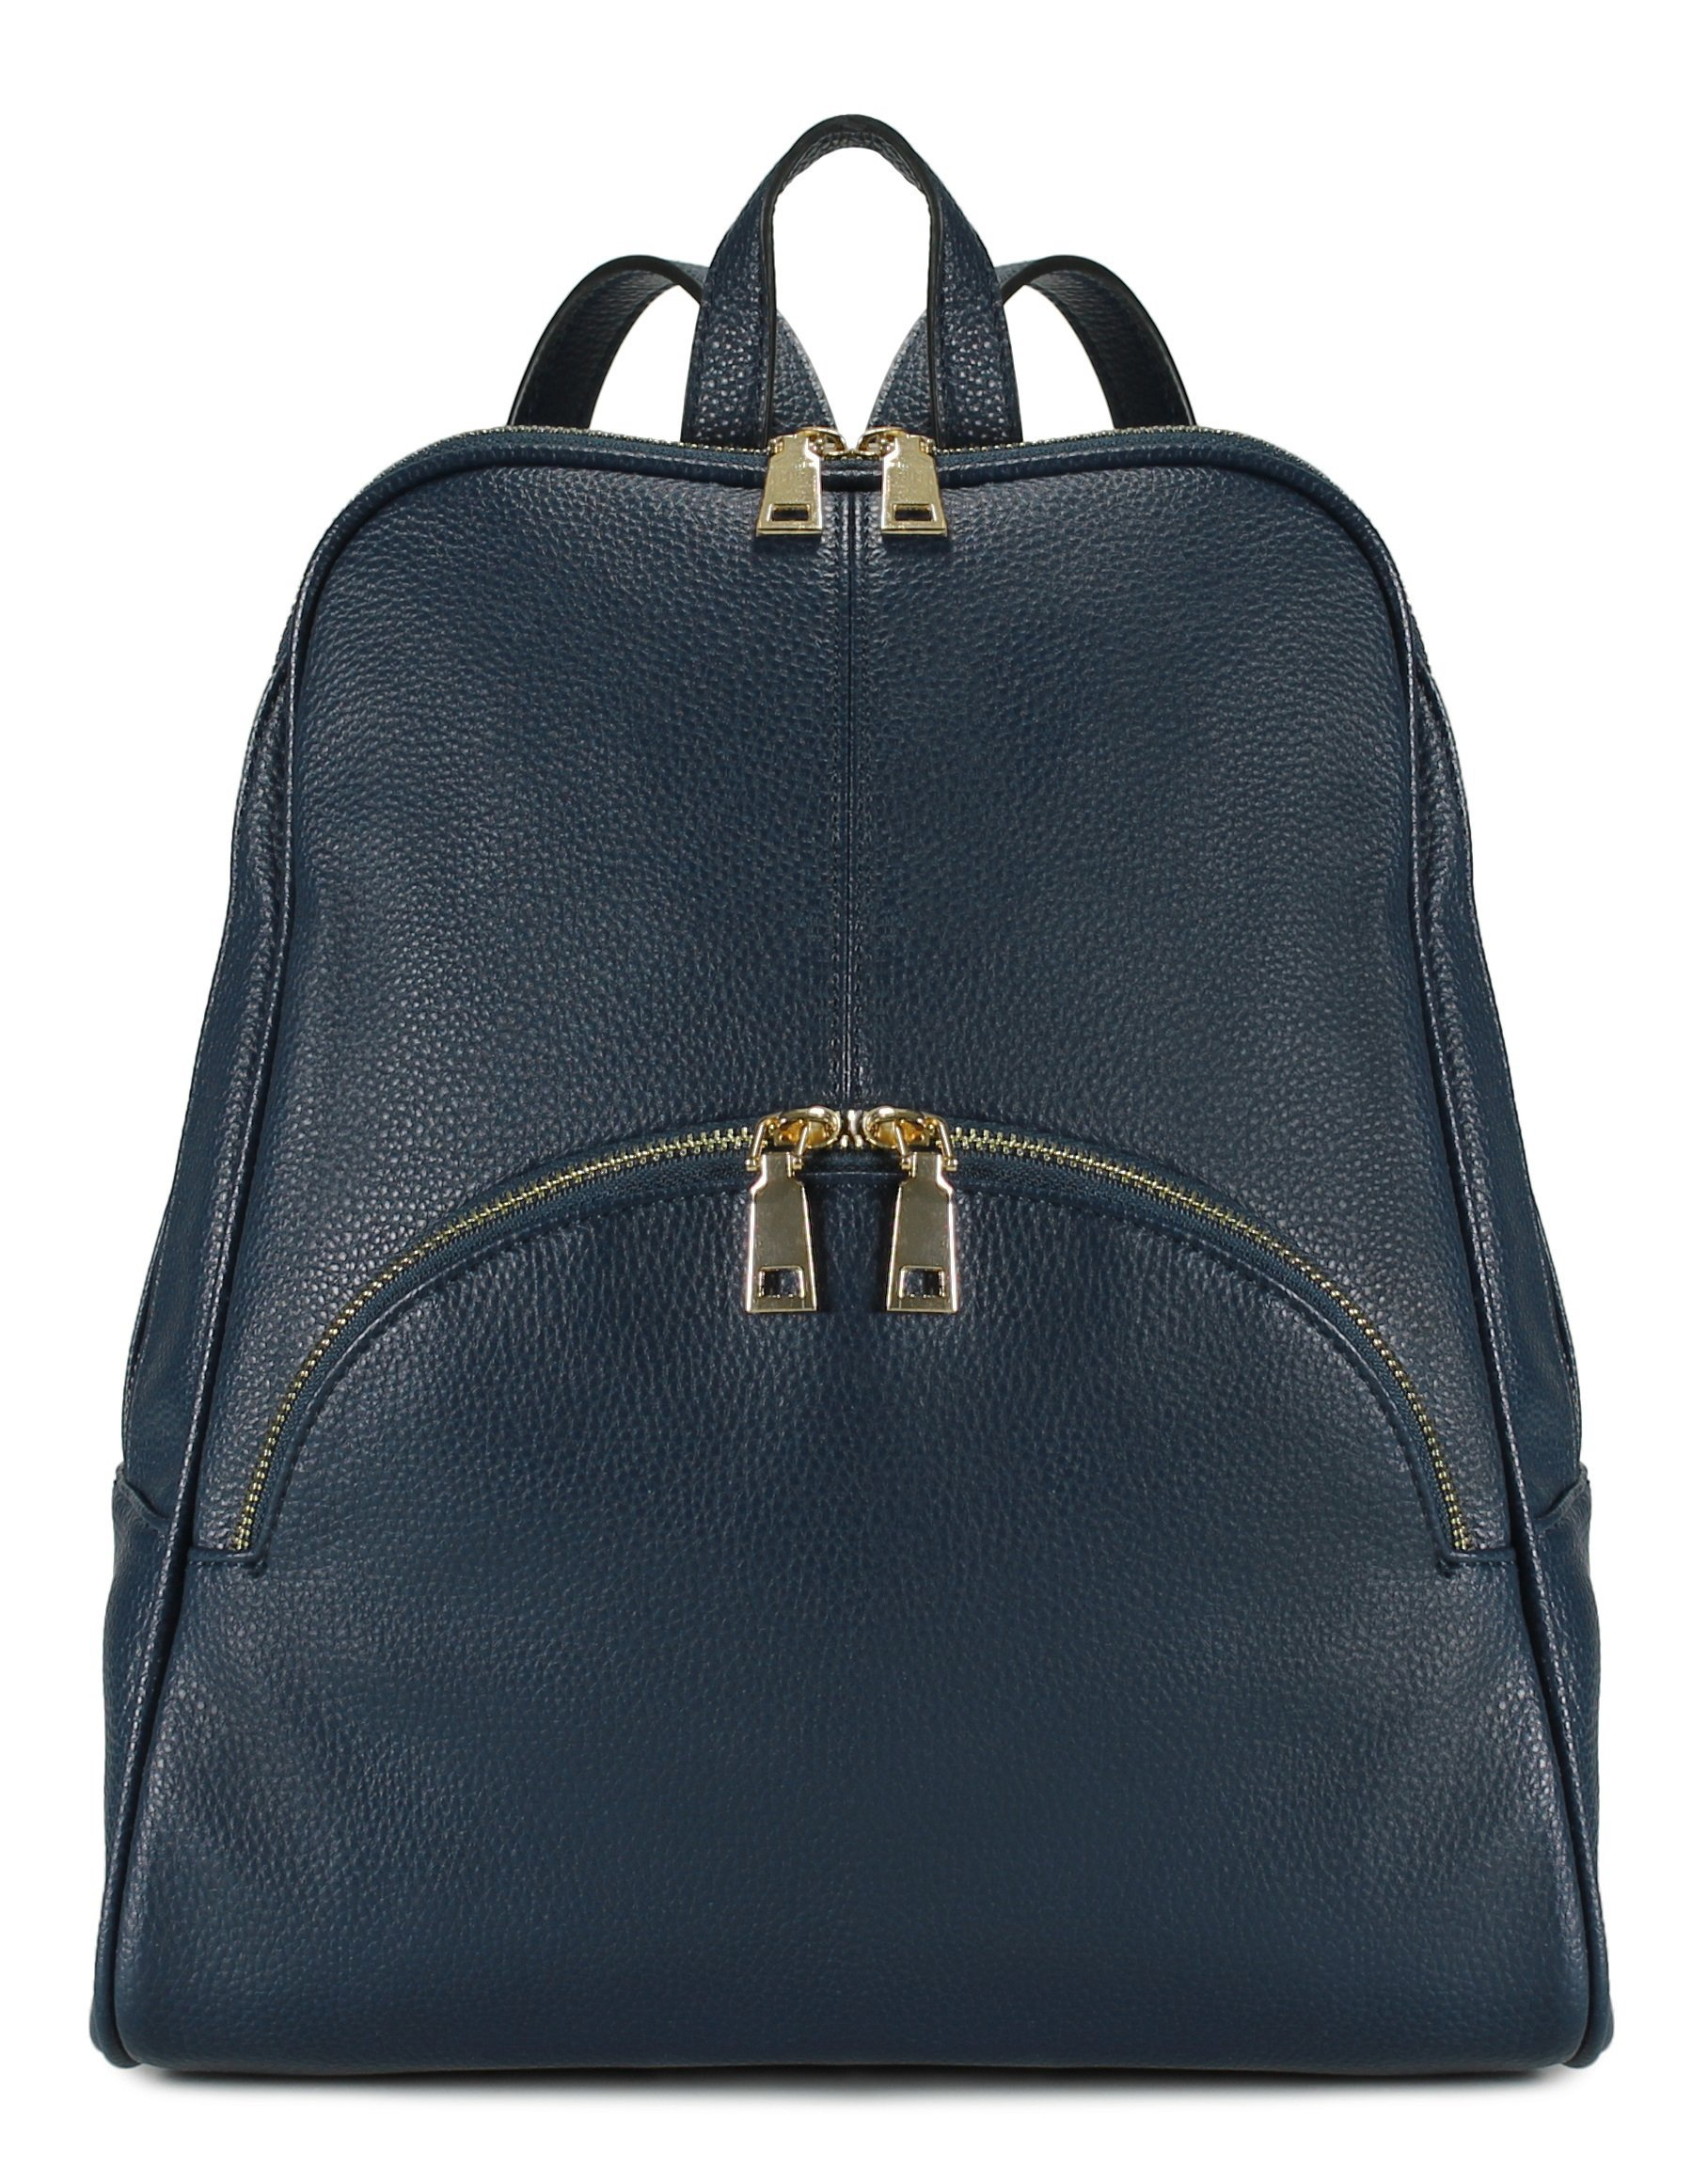 Scarleton Chic Casual Backpack H160819 - Navy